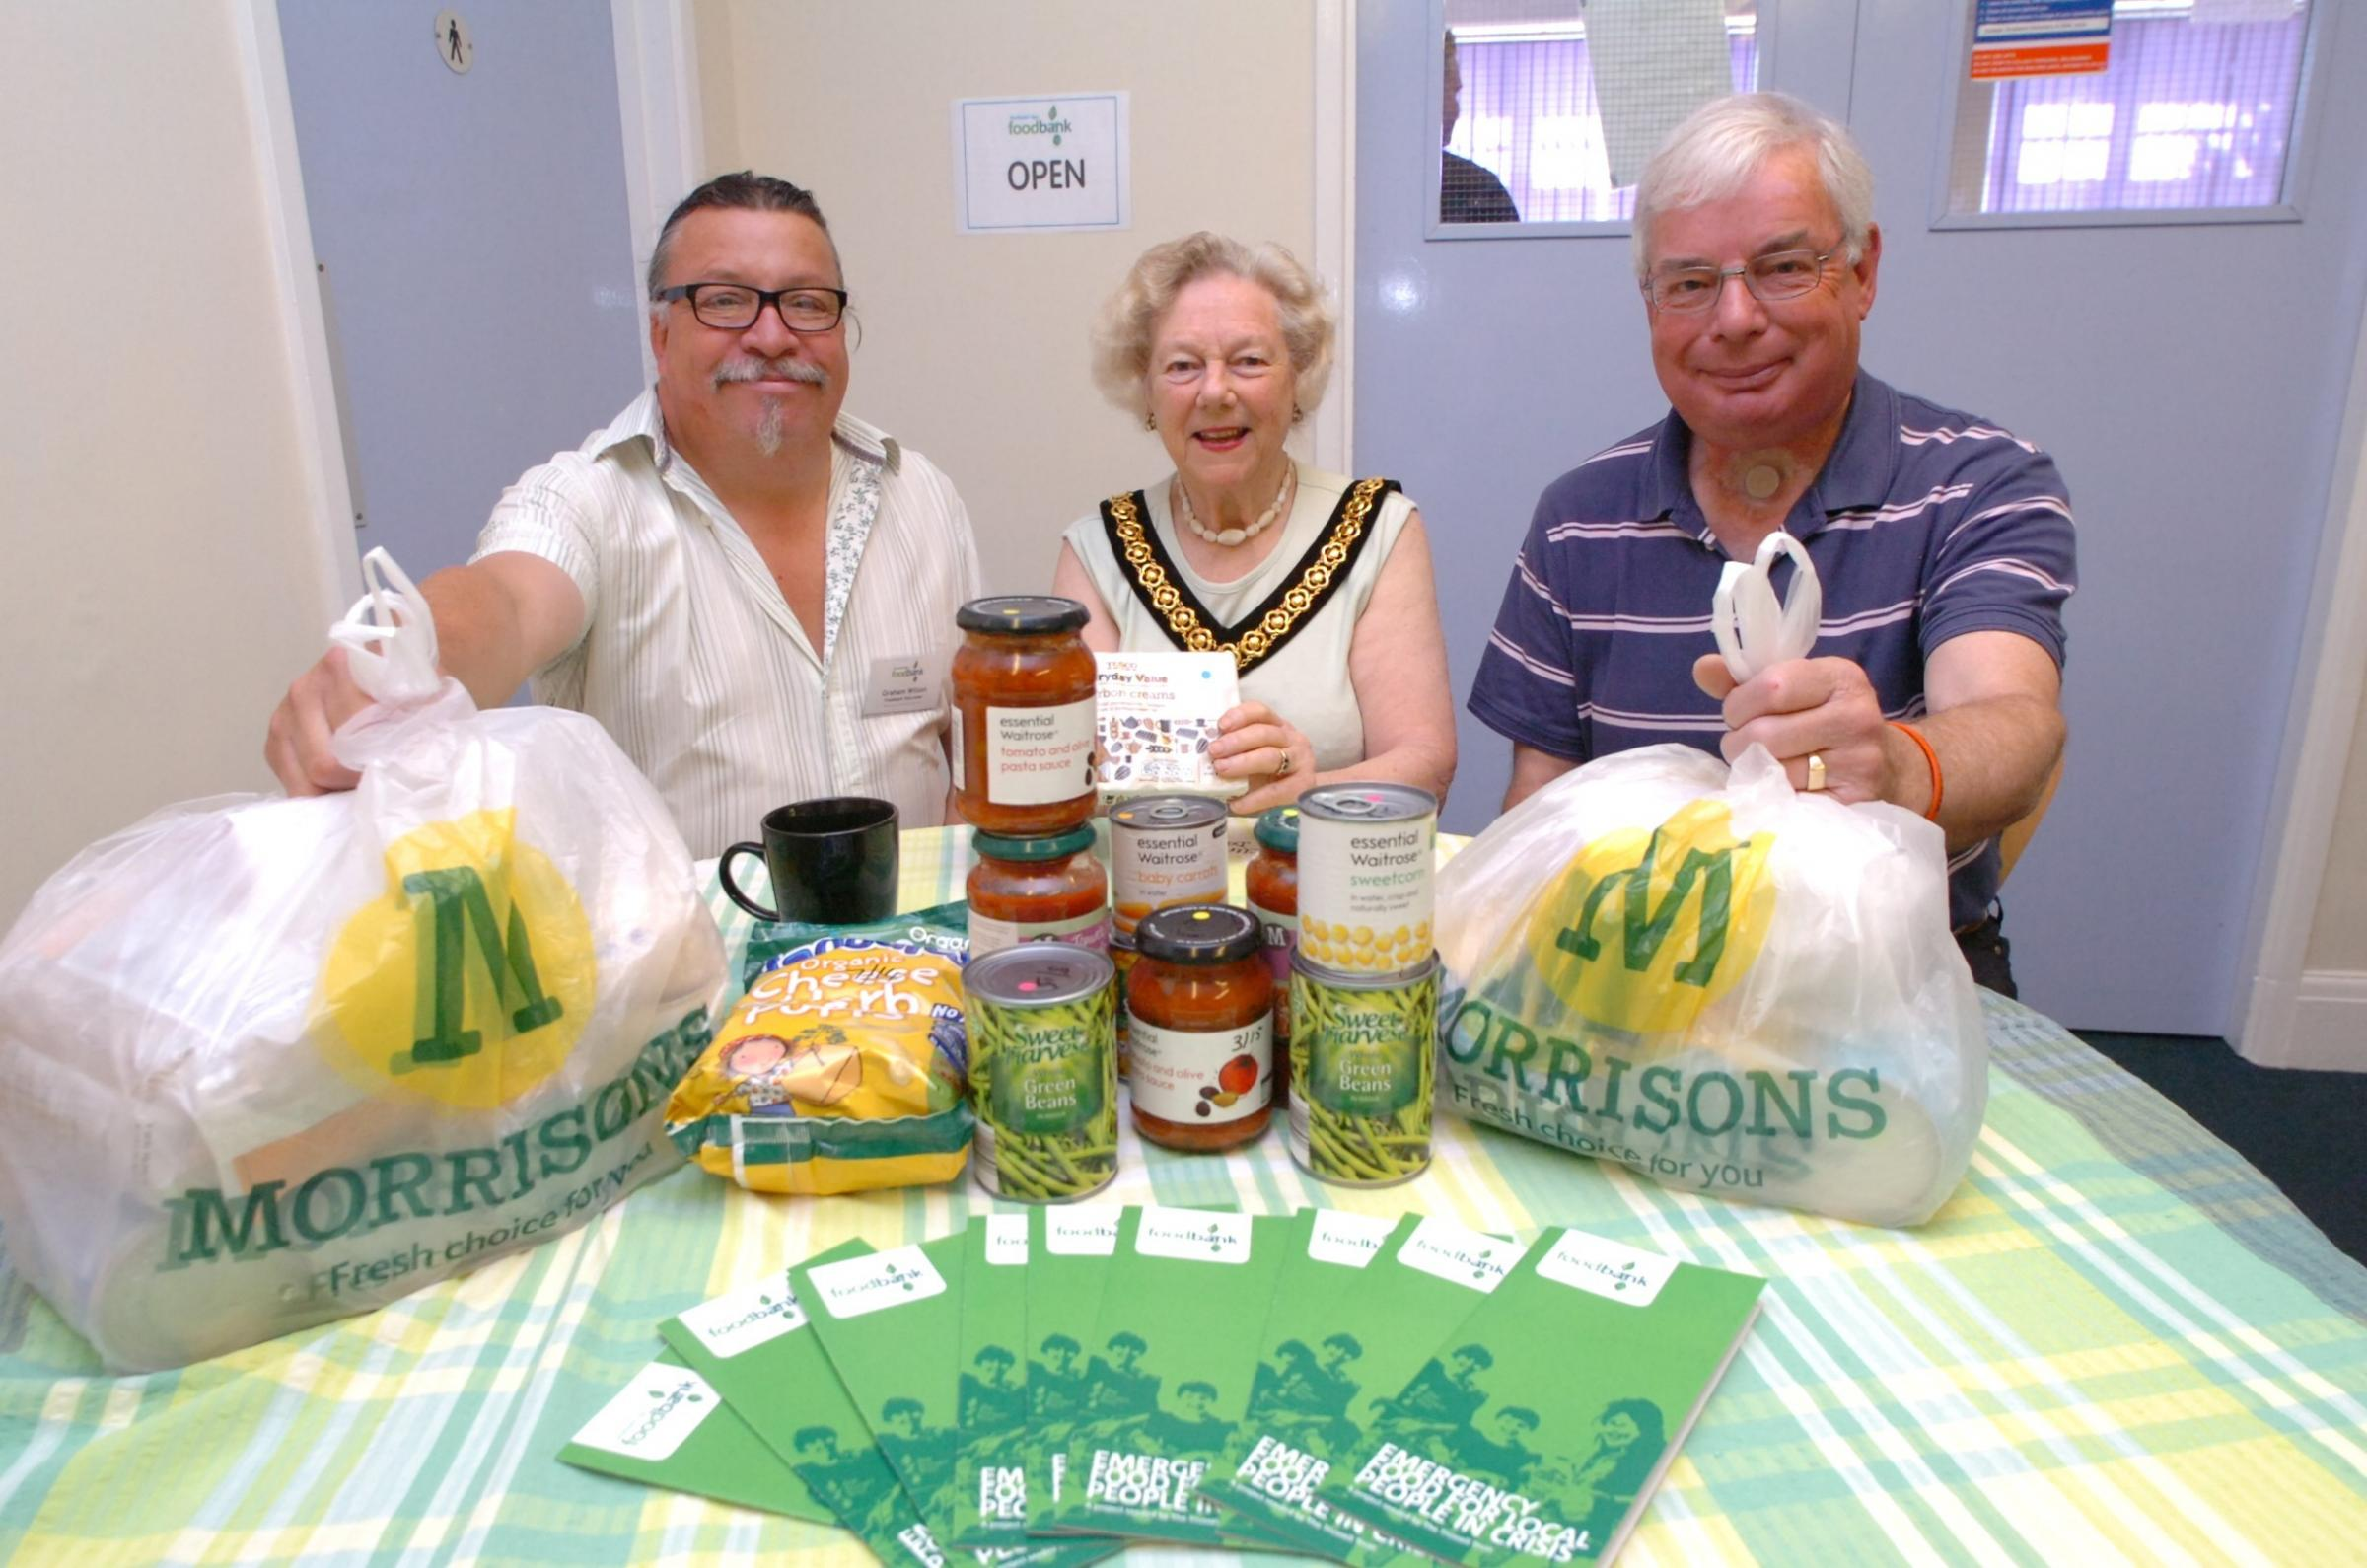 Project leader Graham Wilson, chairman, Councillor Pam Davey, and project manager David Stanbury at the launch of the Droitwich Spa foodbank. Buy photo: BMM281402 at droitwichadvertiser.co.uk/pictures or call 01384 358200.